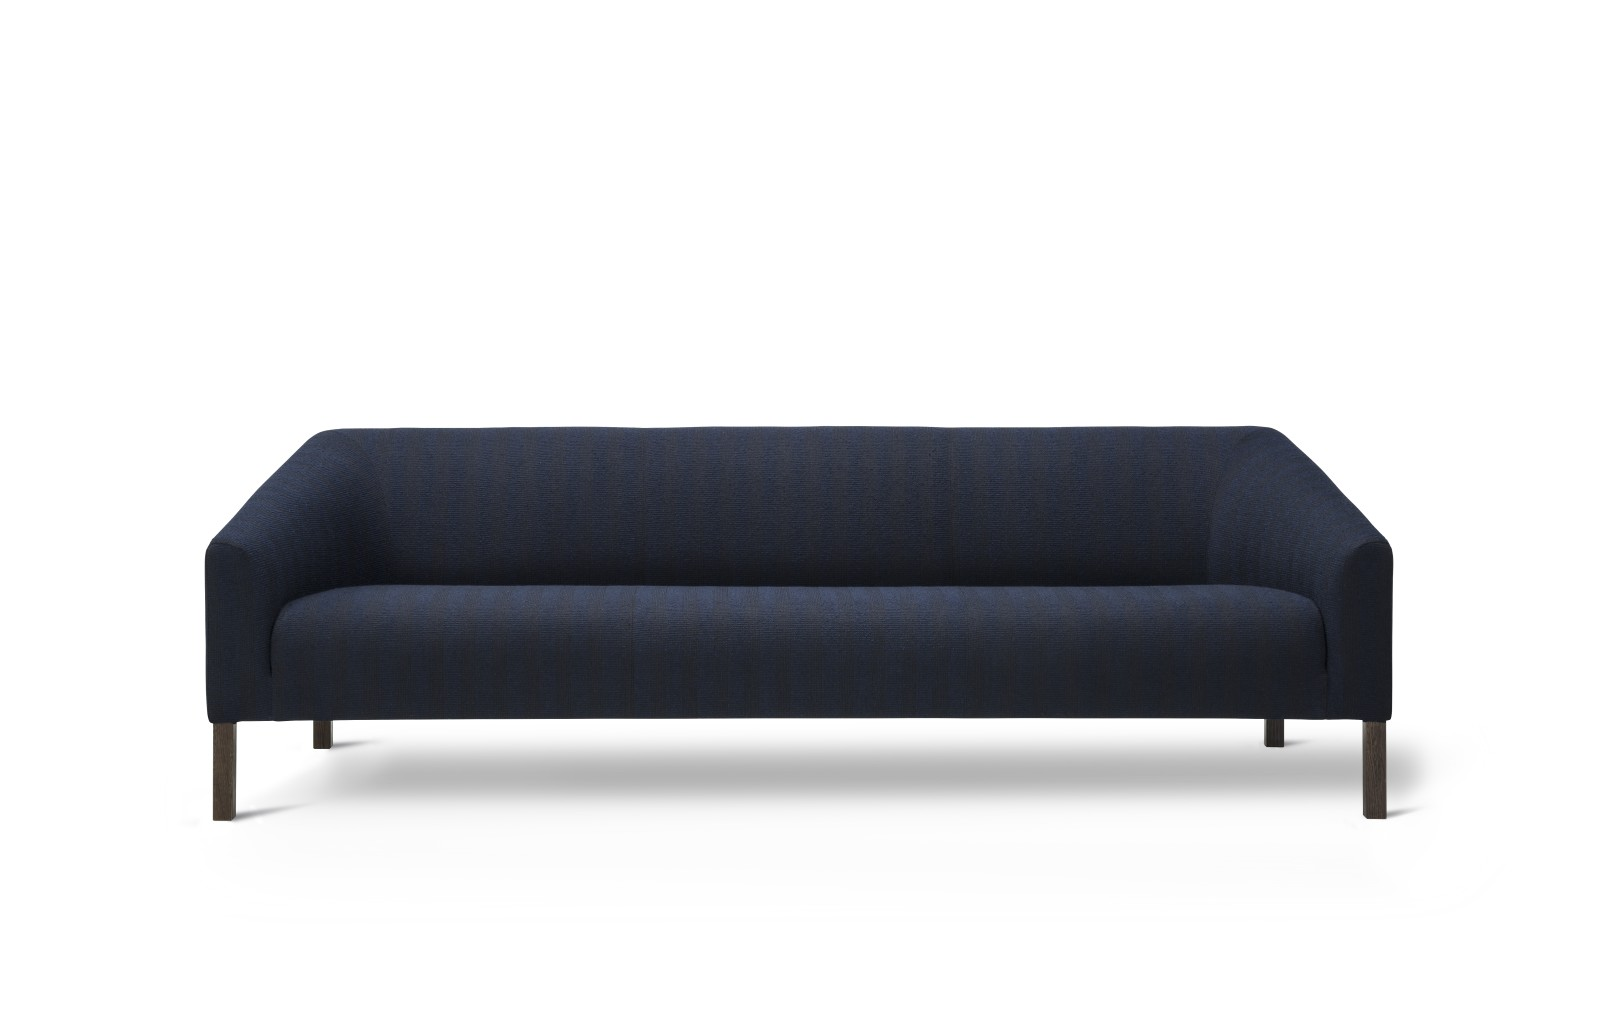 Kile Sofa 3-seater Oak Lacquered, Remix 2 113